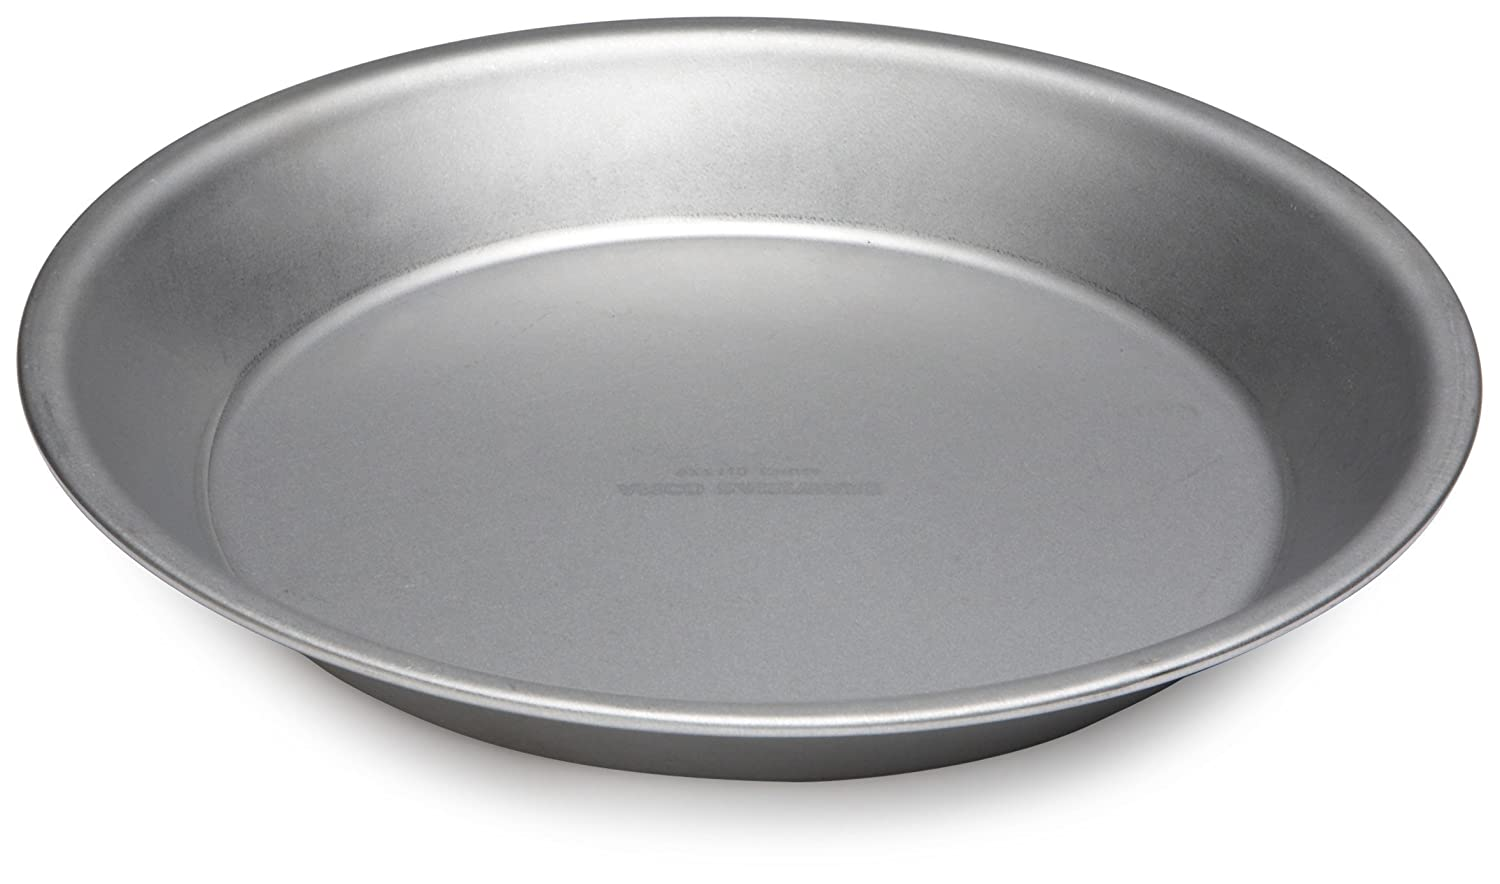 Amazon.com Focus Foodservice Commercial Bakeware 10 Inch Pie Pan Kitchen u0026 Dining  sc 1 st  Amazon.com & Amazon.com: Focus Foodservice Commercial Bakeware 10 Inch Pie Pan ...